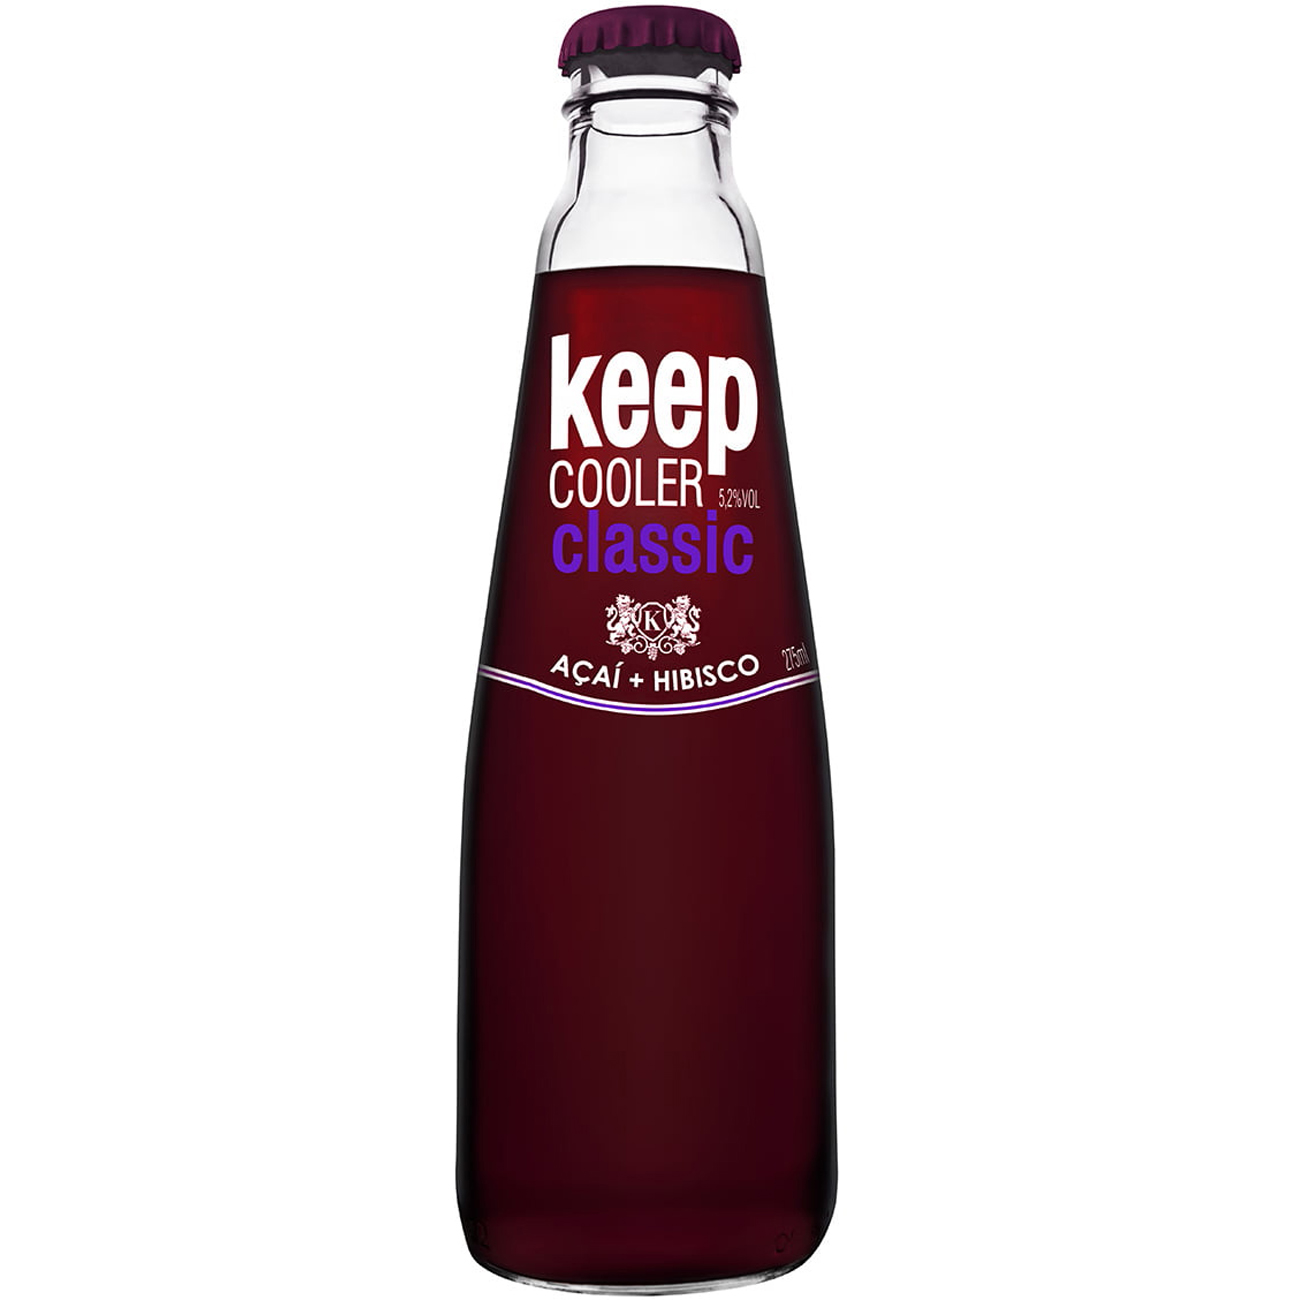 Keep Cooler Acai + Hibisco 275Ml